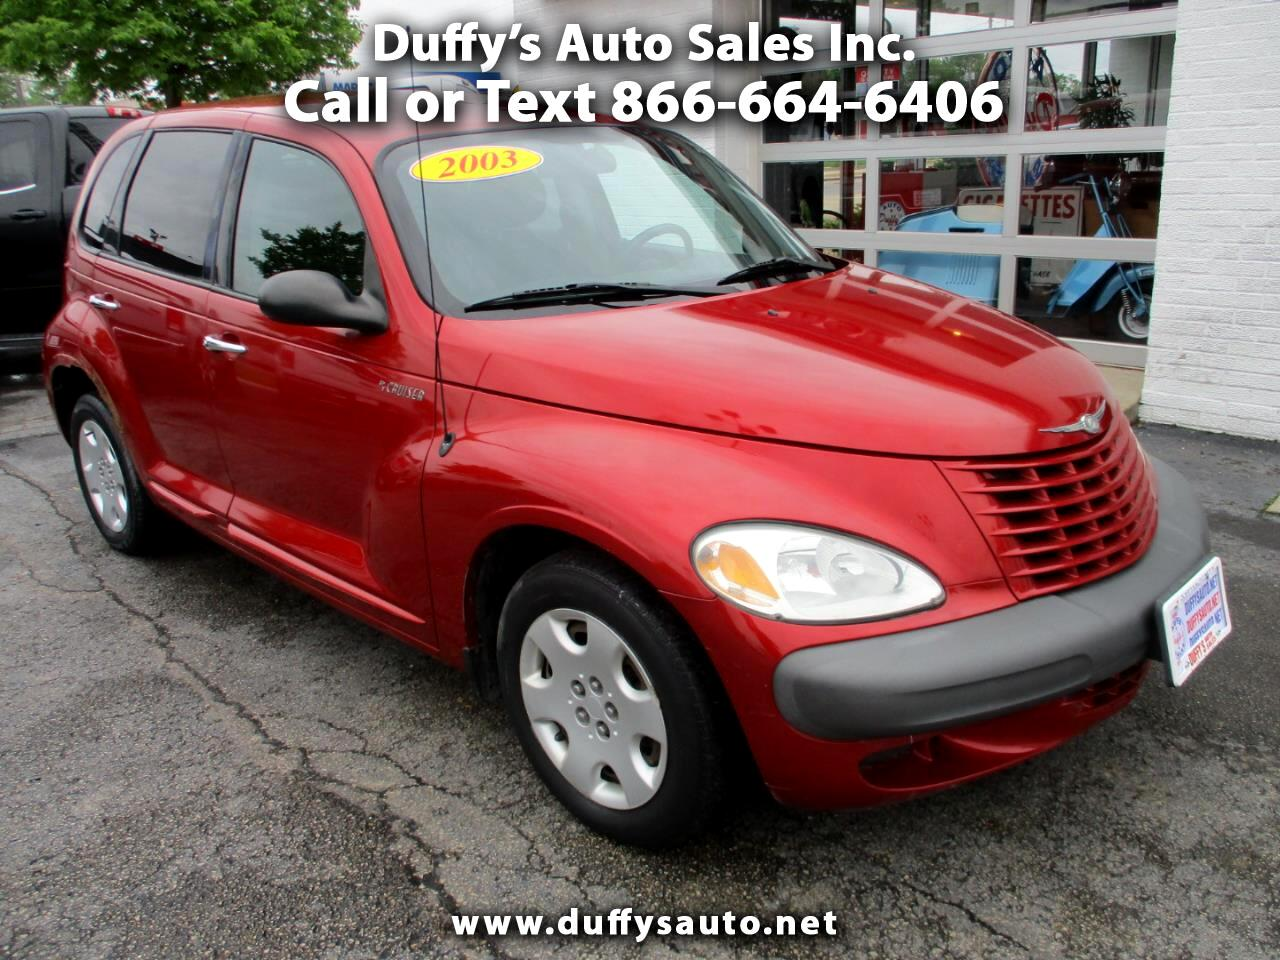 2003 Chrysler PT Cruiser 4dr Wgn